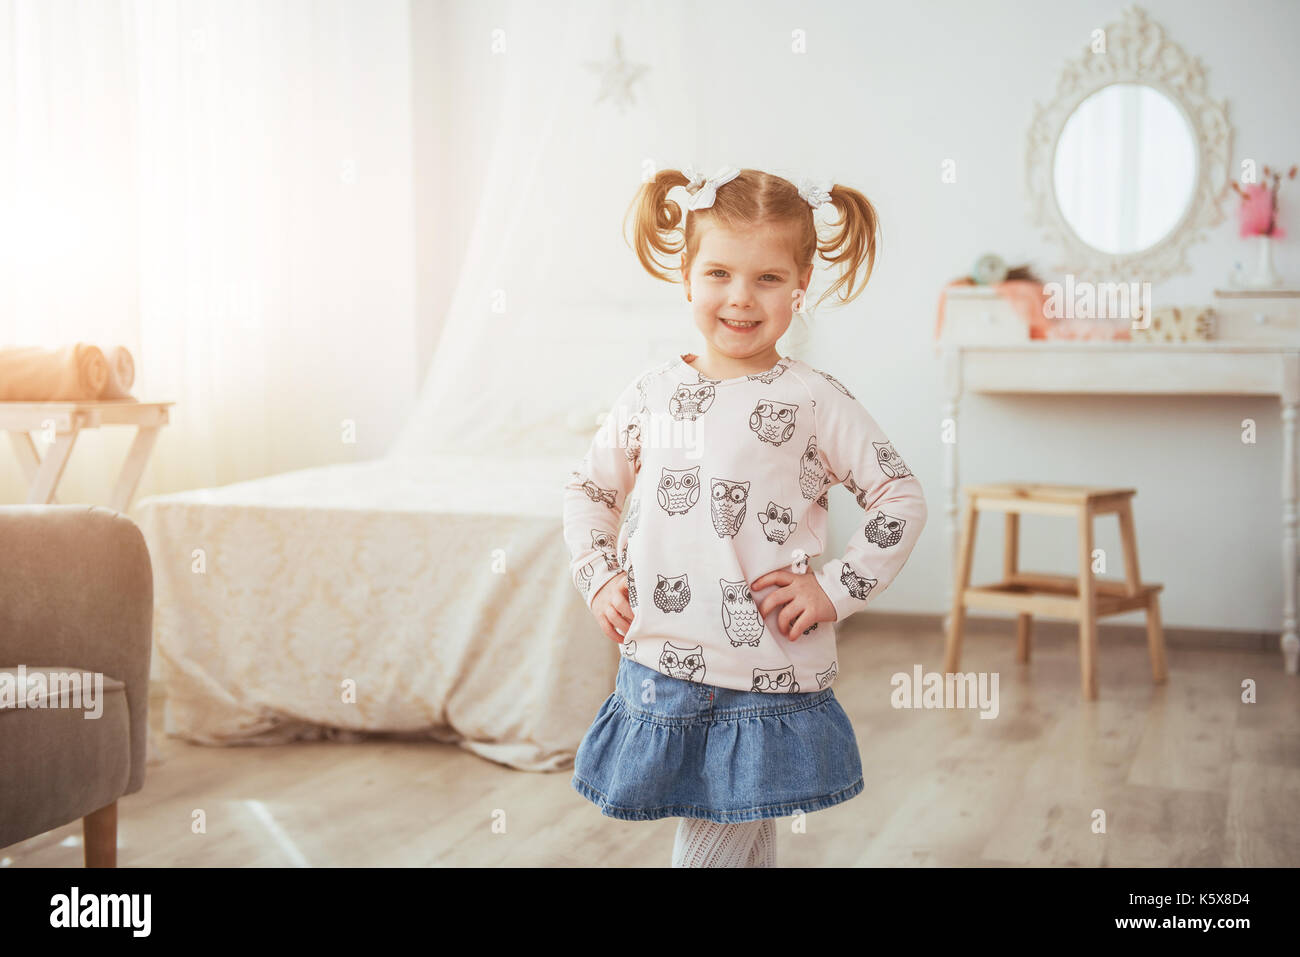 happy face funny baby girl. In a bright room - Stock Image